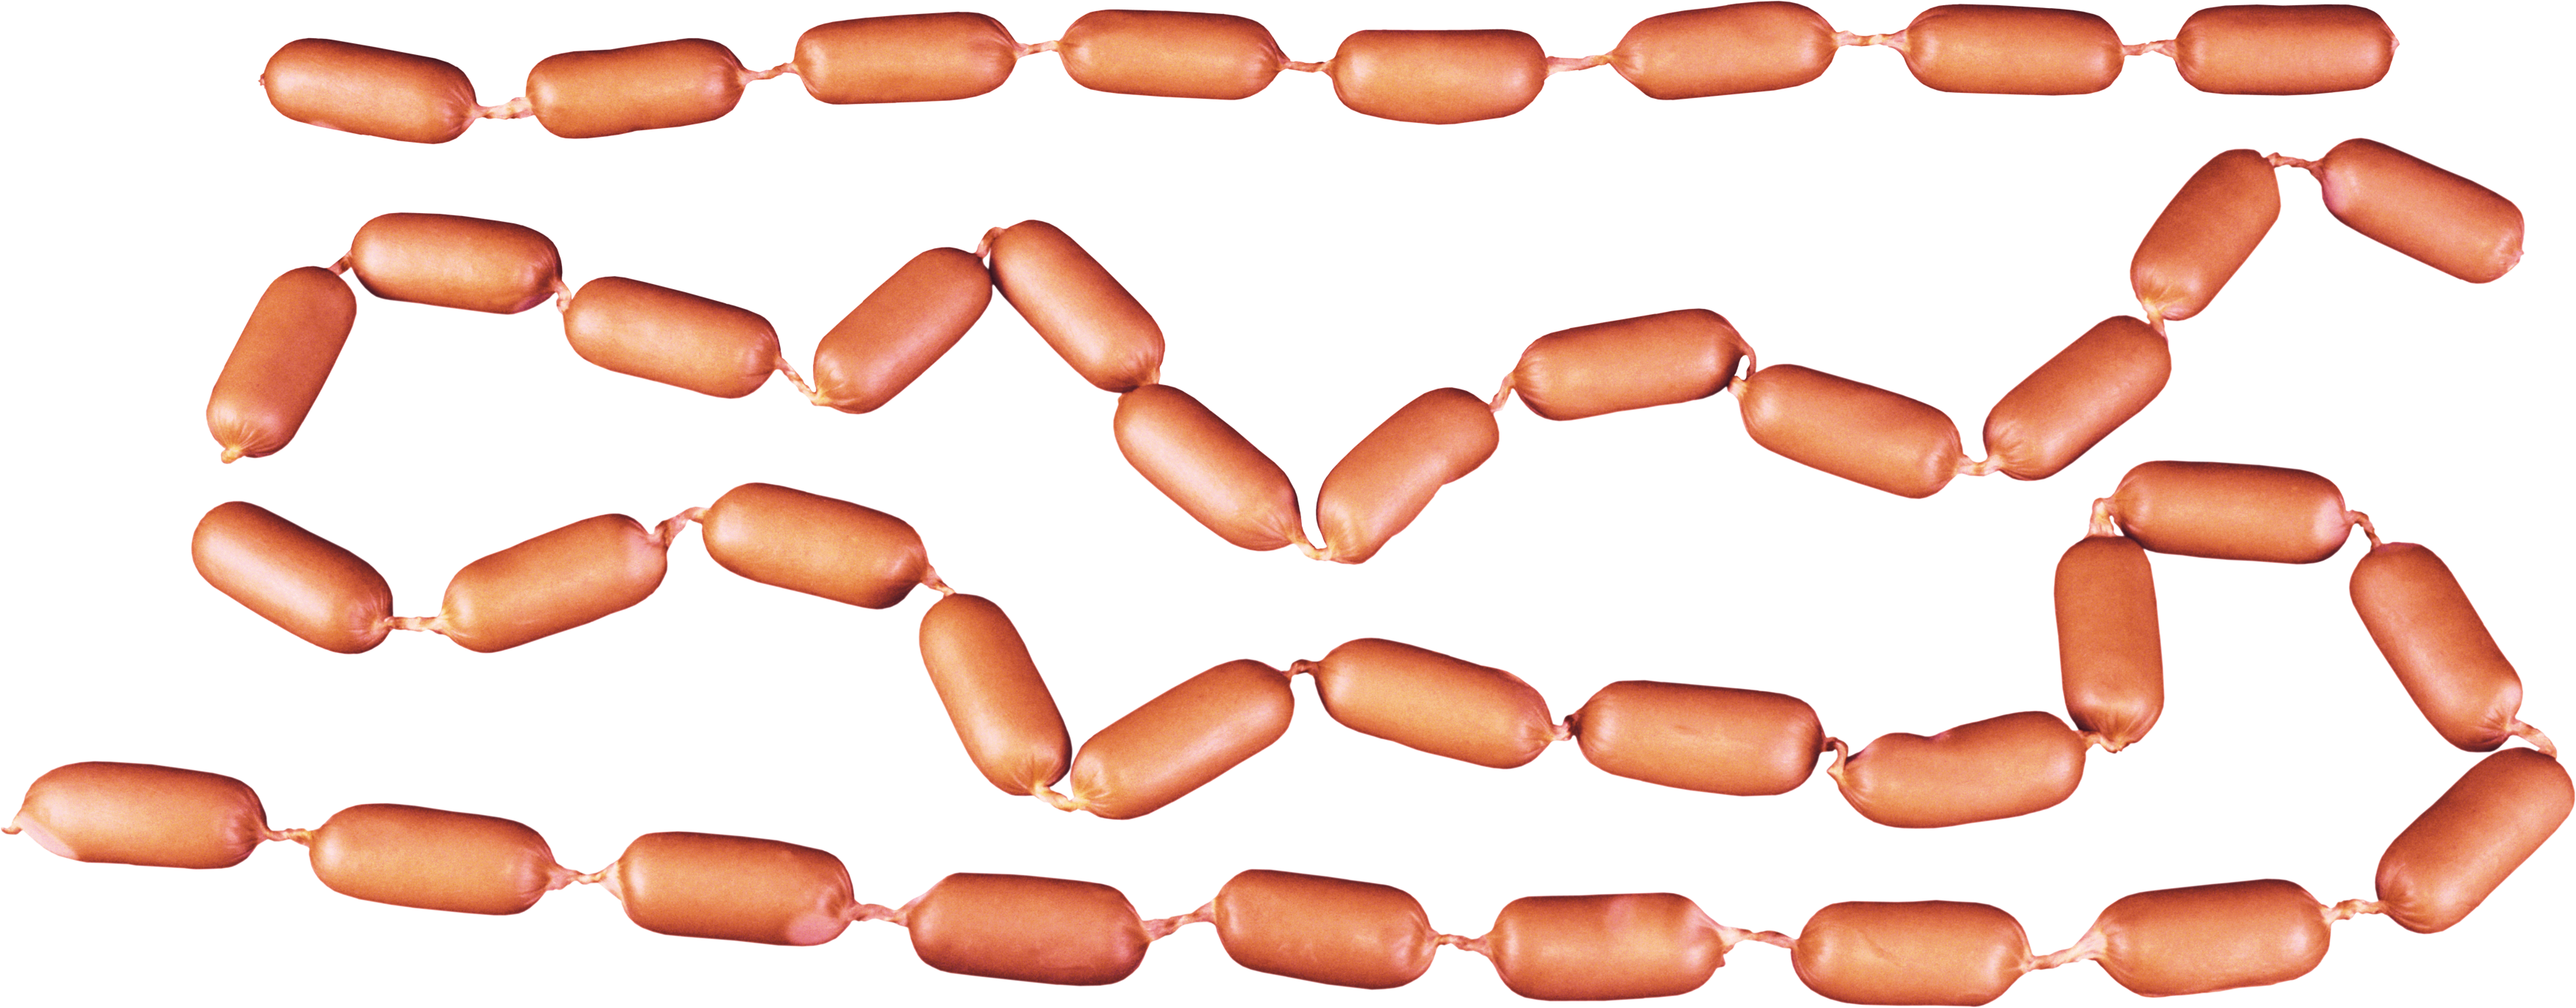 Fat clipart unhealthy snack. Sausage six isolated stock